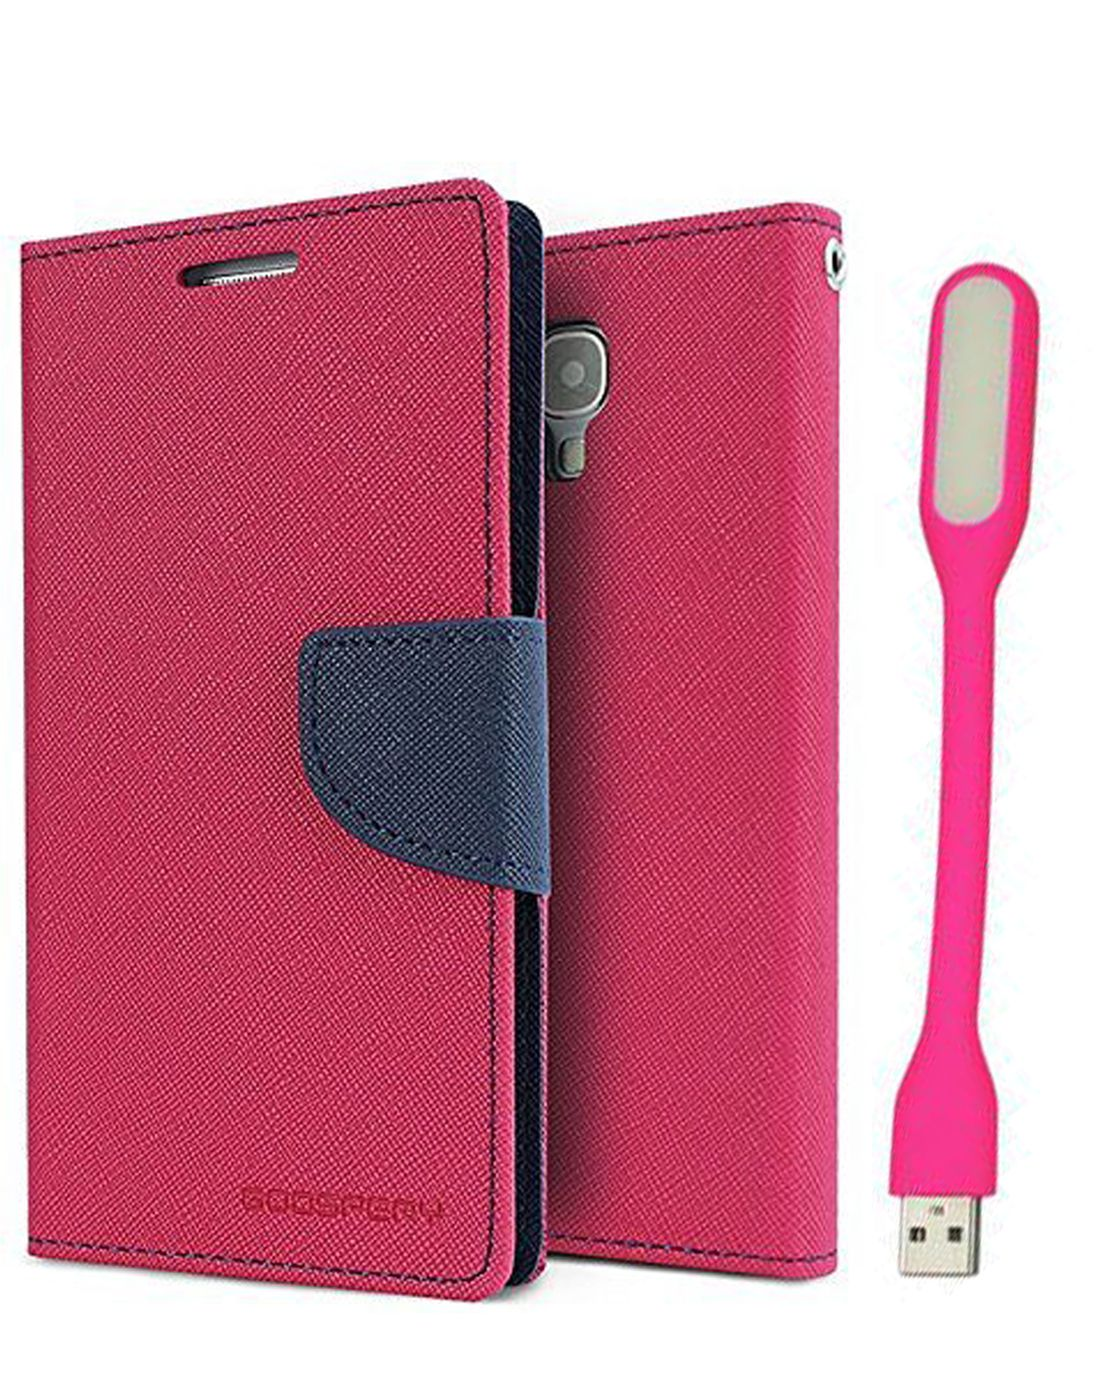 Wallet Flip Case Back Cover For HTC 826 - (Pink) + Flexible Mini LED Stick Lamp Light By Style Crome